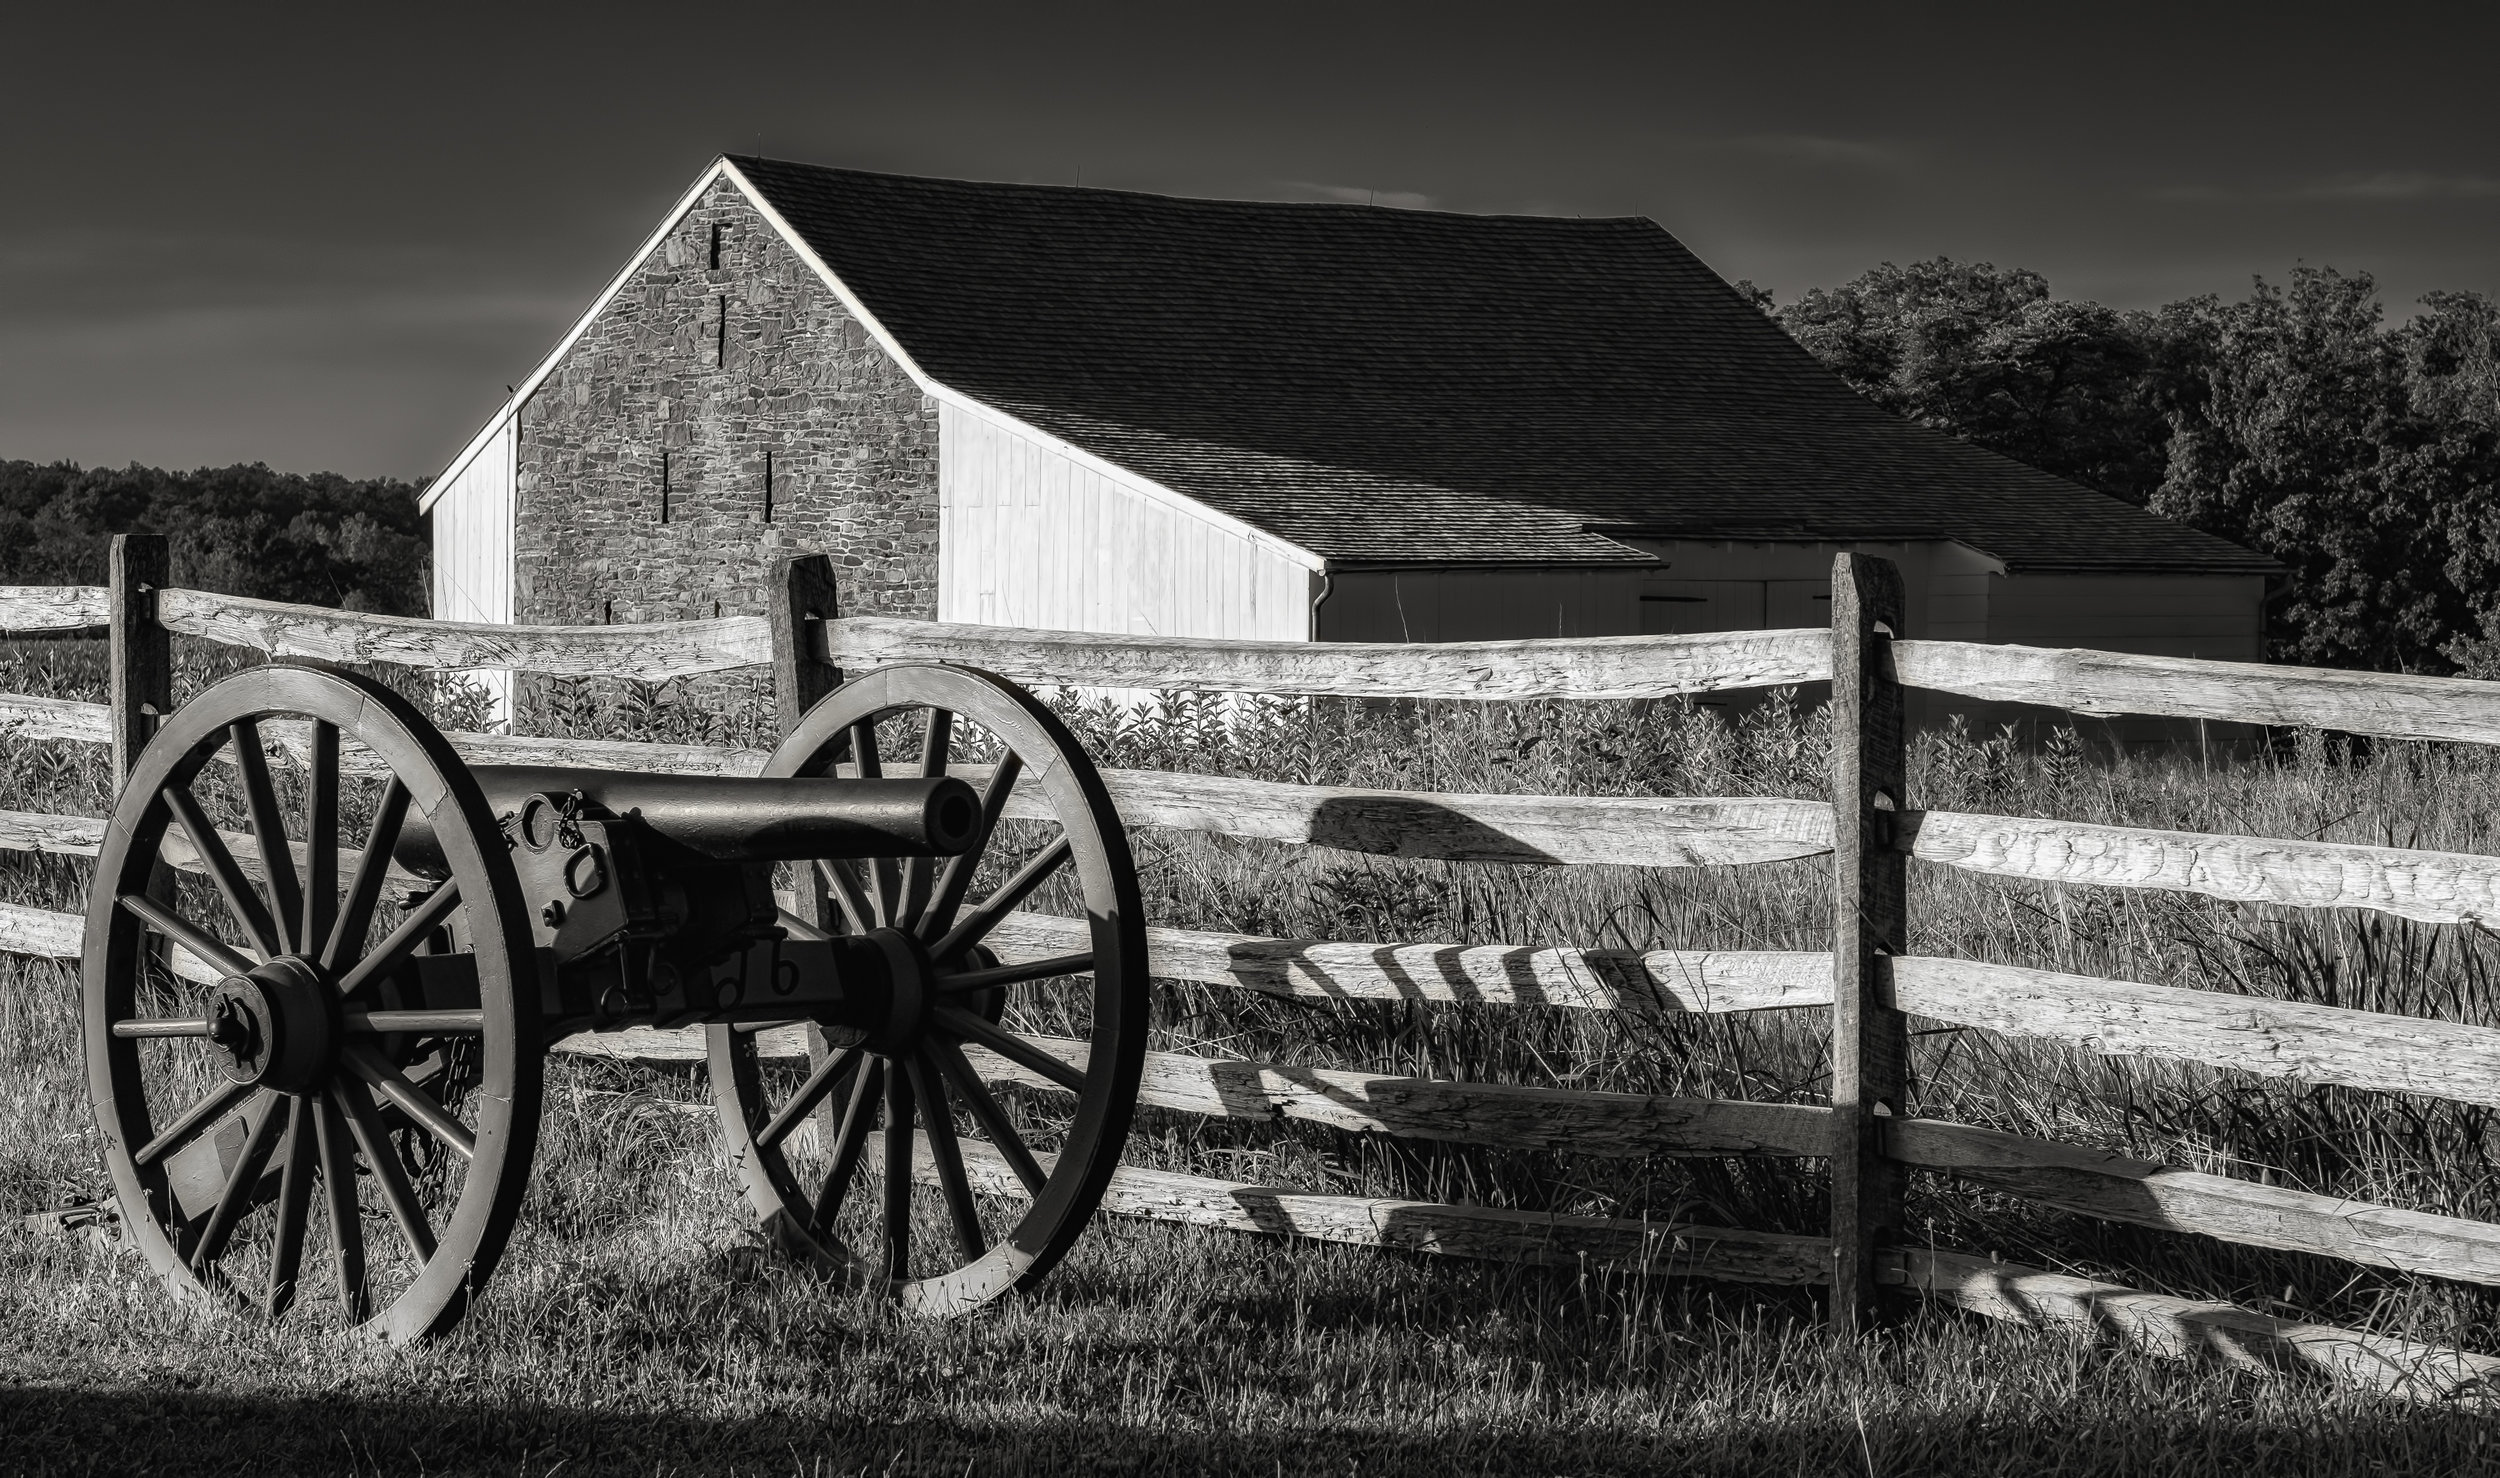 """Gettysburg Dream - Fujifilm XT-3, 1/500 @ f/8.0, ISO 160, 56mm. An early morning shot of the McPherson Barn on the 1st day's battlefield at Gettysburg. The light and shadow called for a black and white toning. The cannon, fence and barn make for a strong composition. This pic is one of my favorites from a recent visit. I have been to Gettysburg more times than I can remember and I encourage all to visit. It is truly """"a vision place of souls."""" See the poem by the same title in the Poetry Section."""